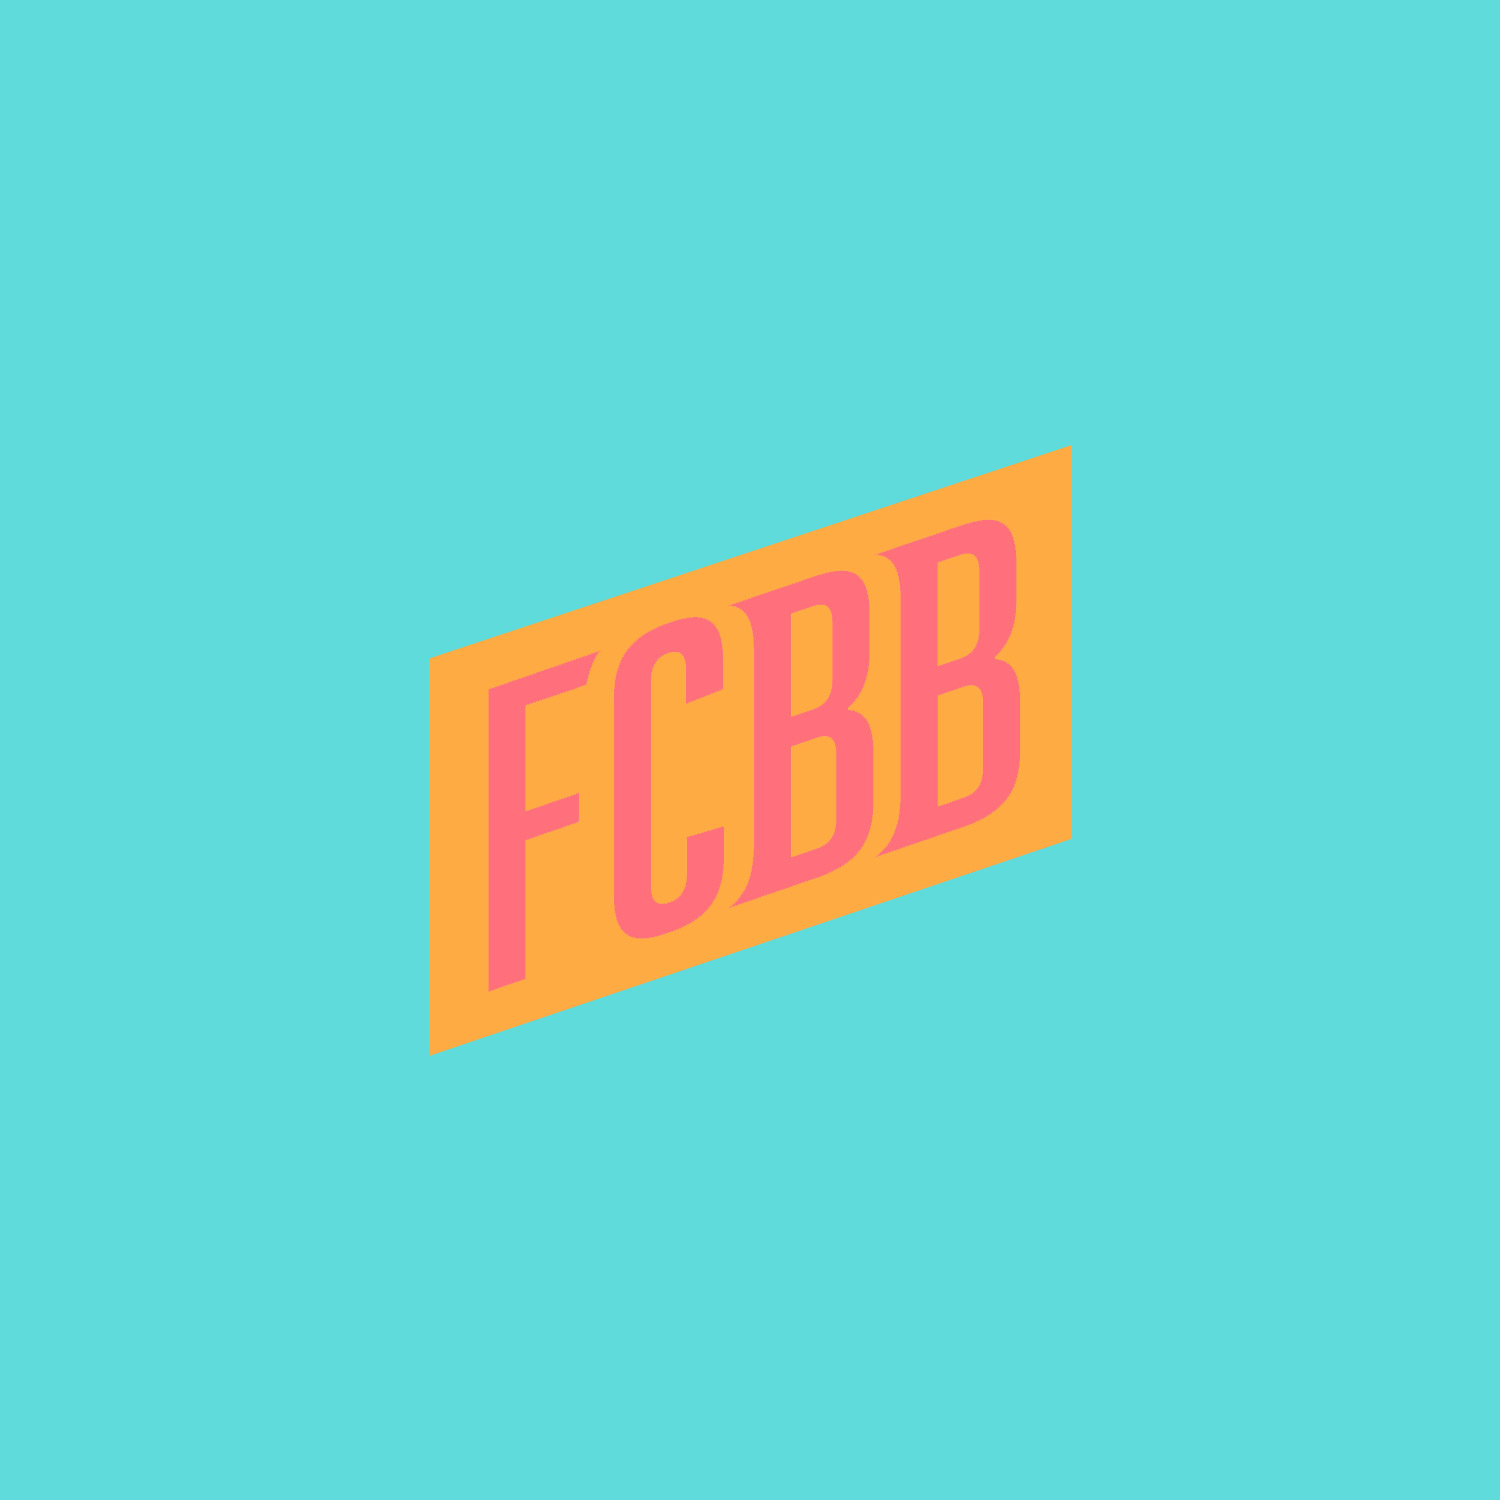 Gabe_Illustration_FCBB_06